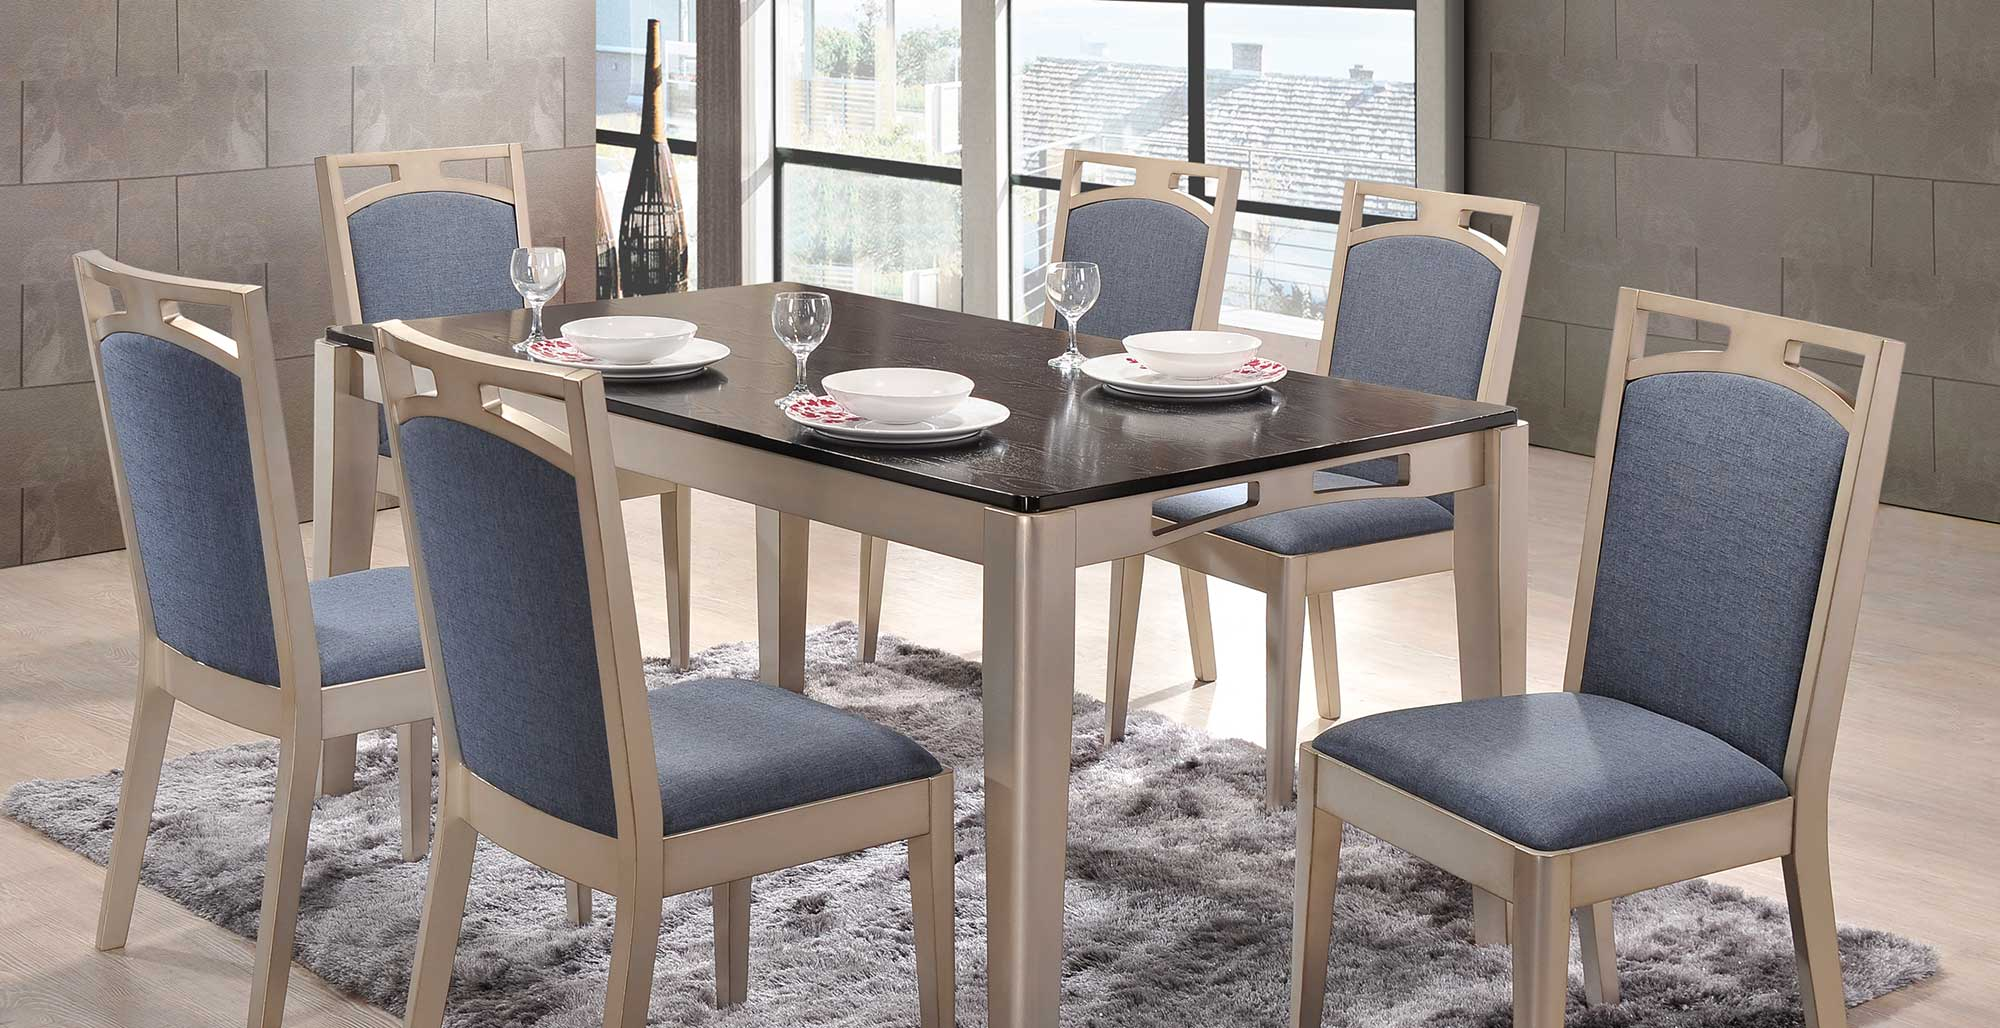 Kg global furniture m sdn bhd - Dining kers ...